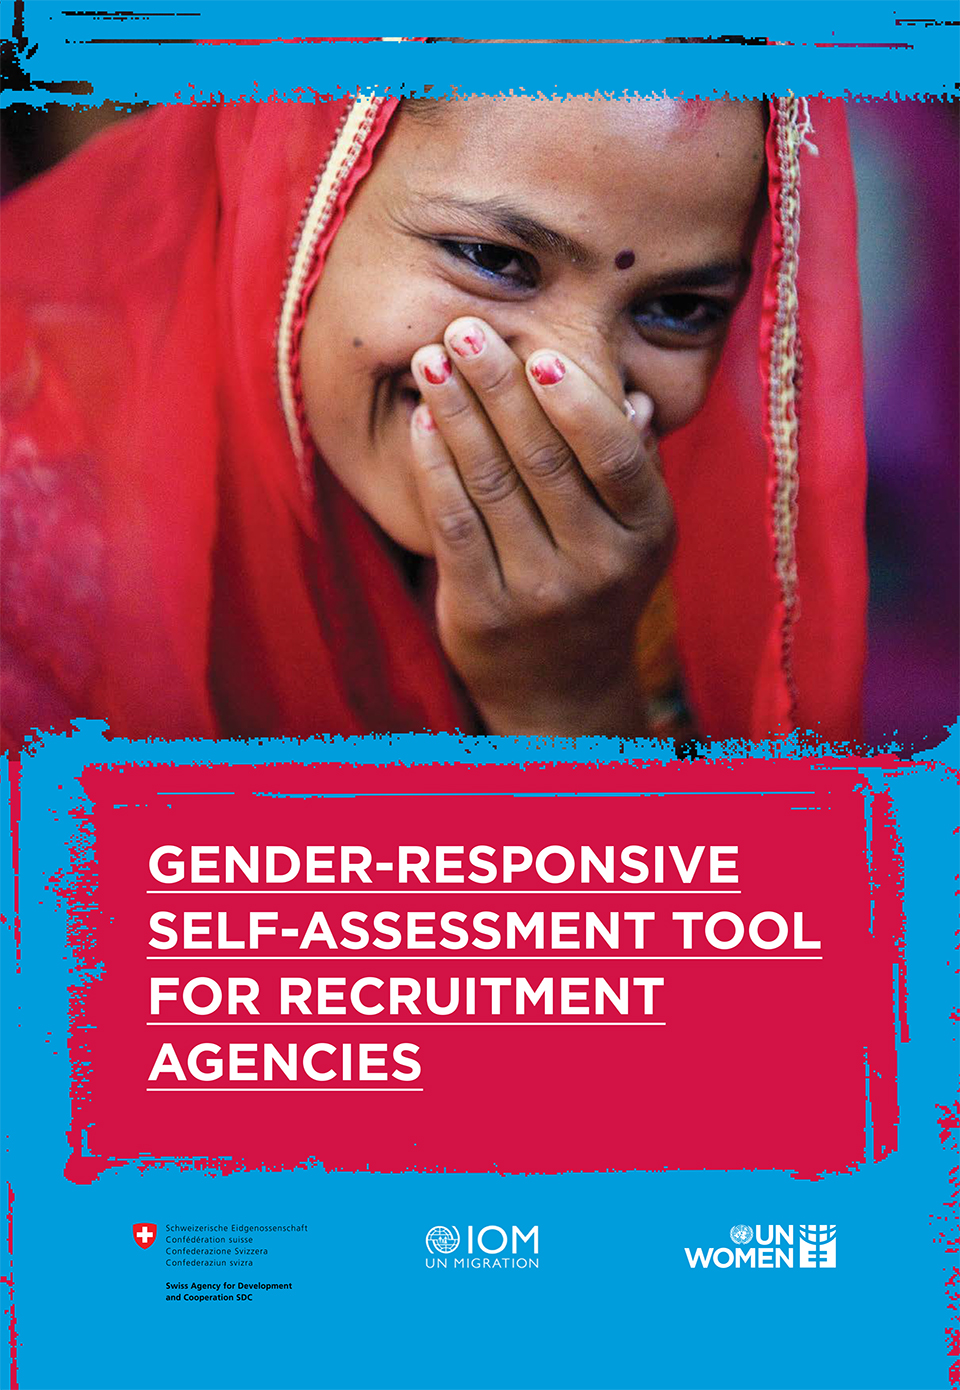 Gender-responsive Self-Assessment Tool for Recruitment Agencies